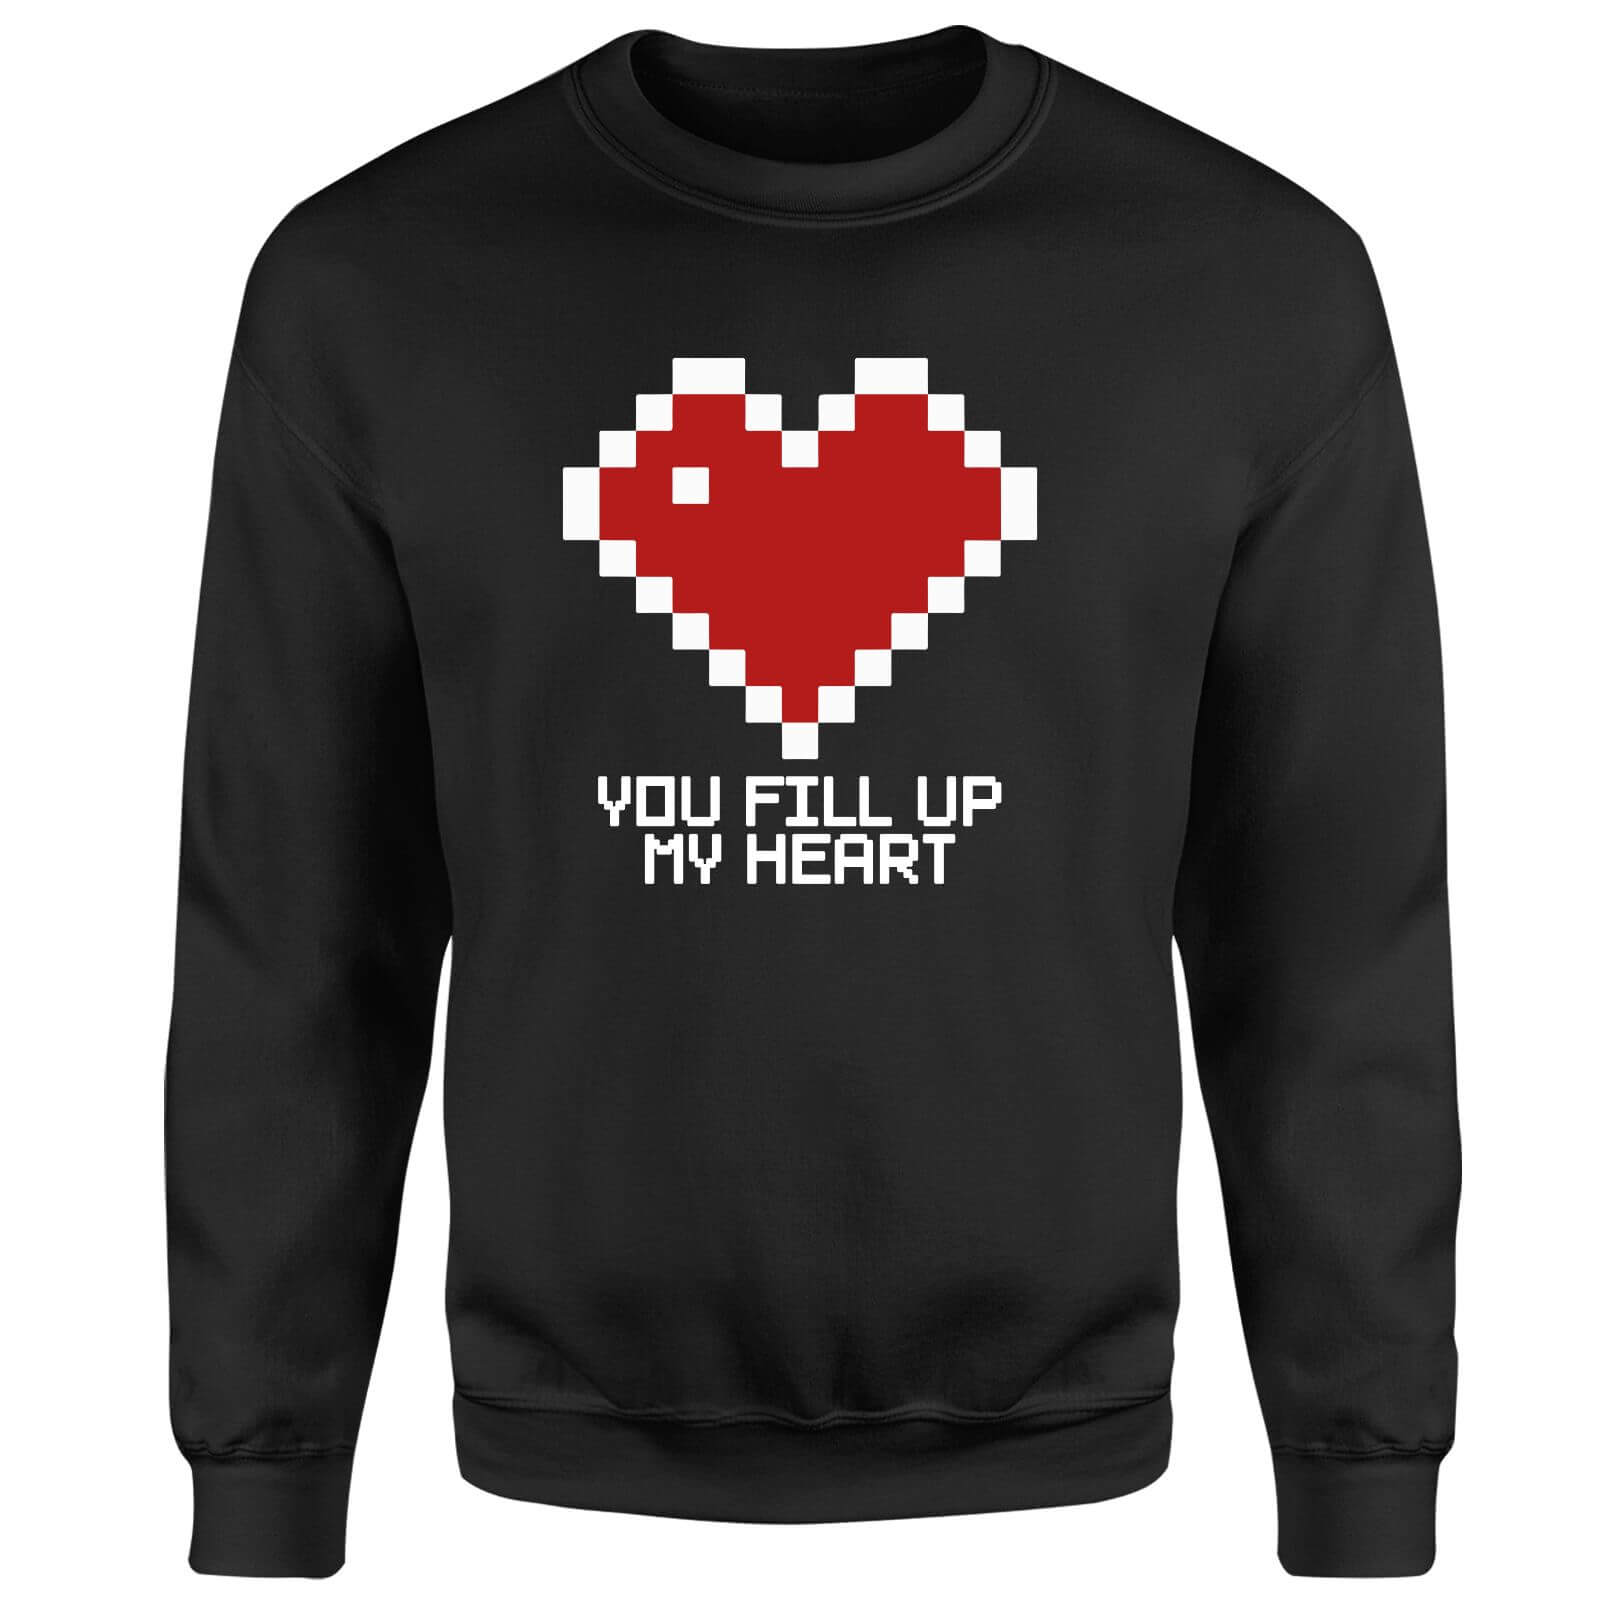 You Fill Up My Heart Sweatshirt - Black